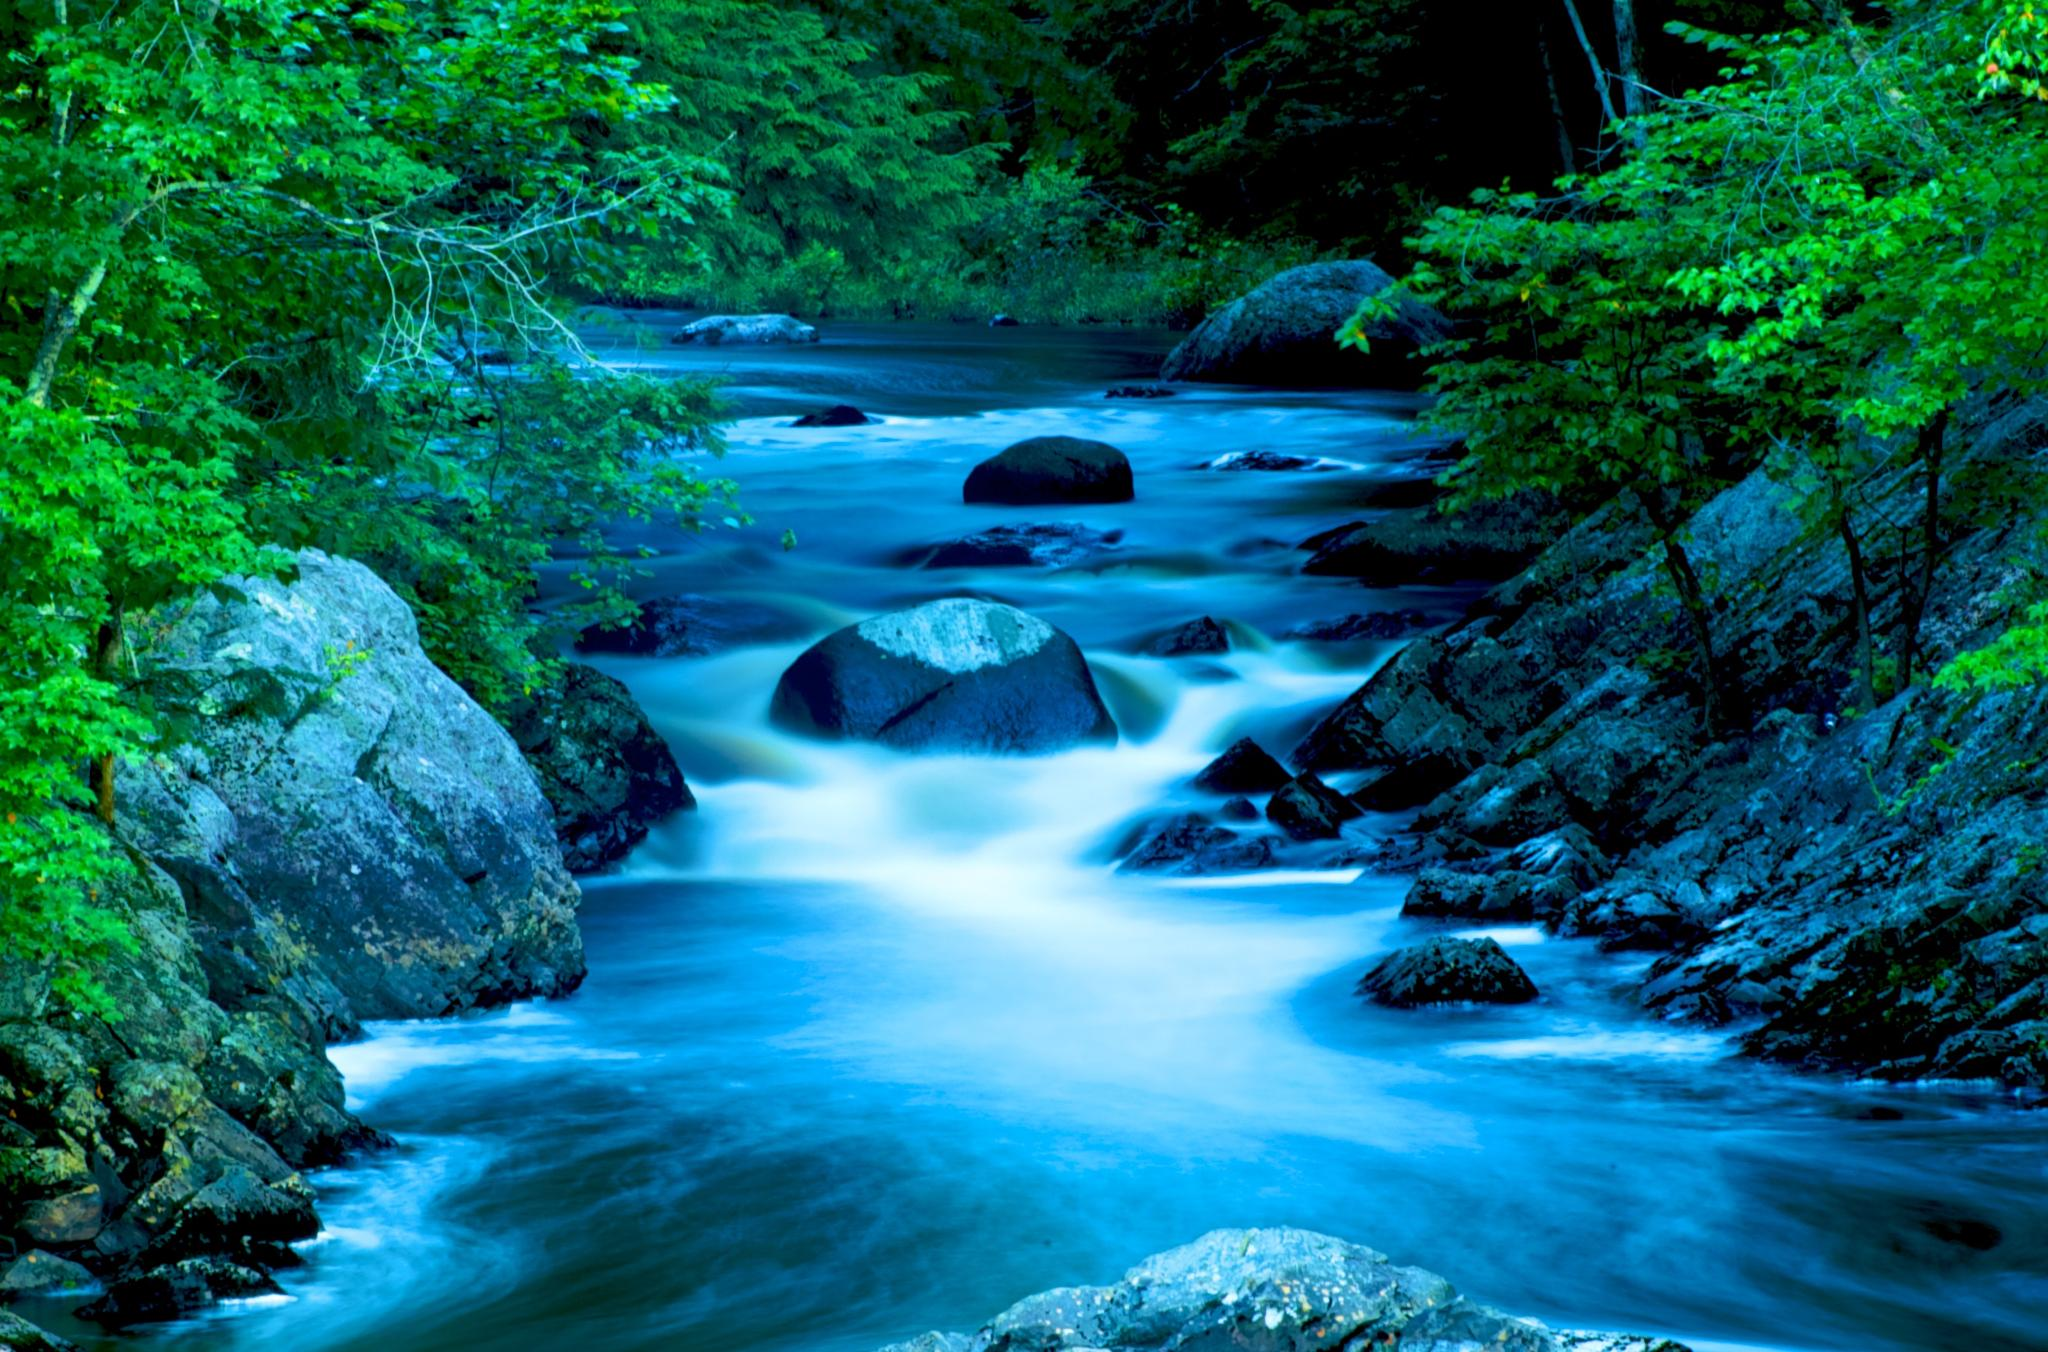 Cool morning stream by Wayne V. Hall (WALL Photography and Design)